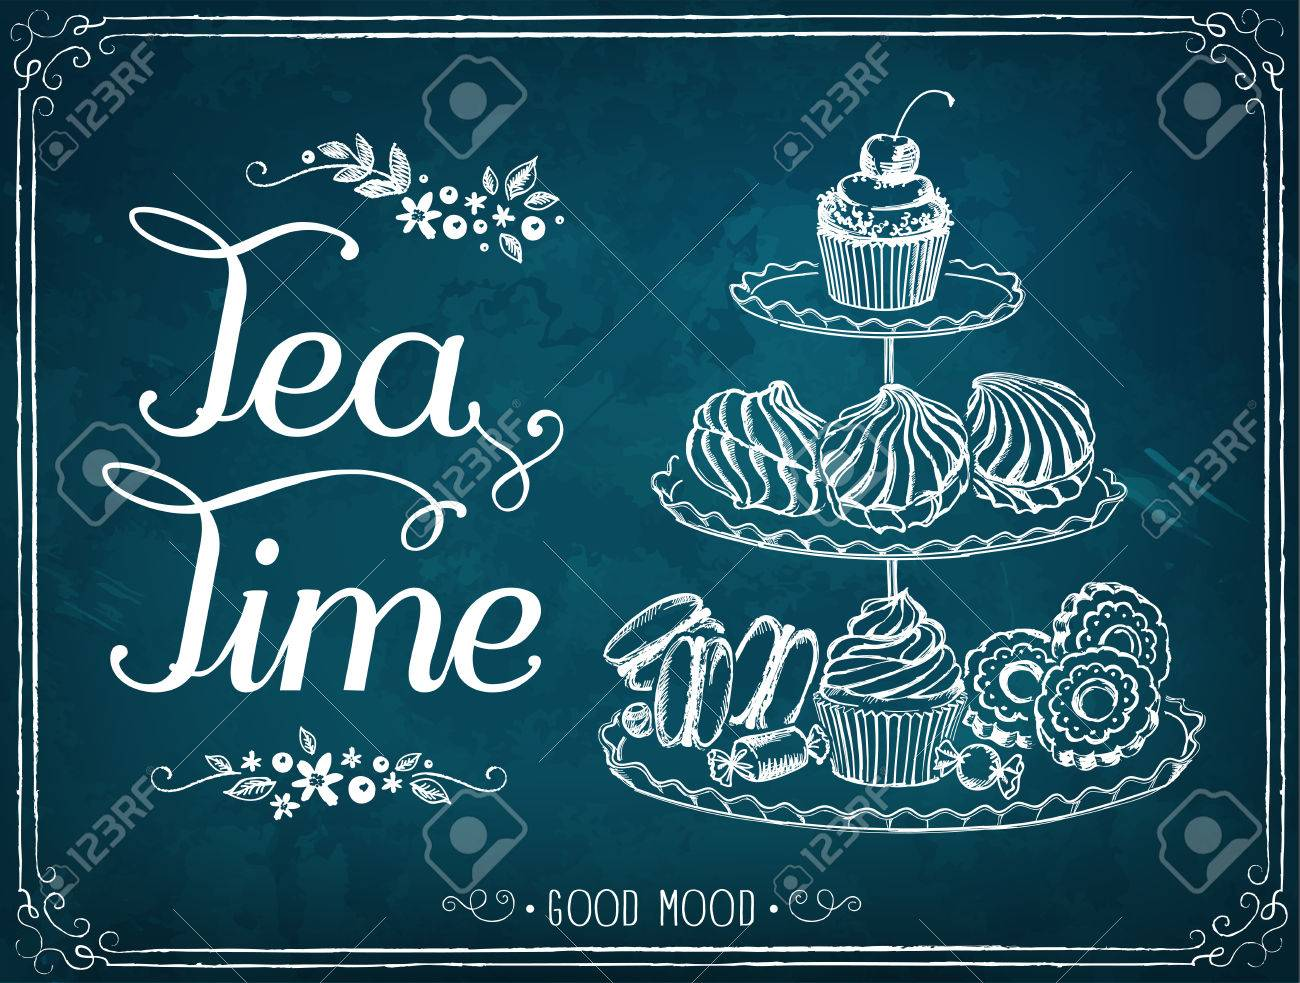 Illustration with the words Tea Time three-tiered stand with sweet pastries. - 51876748